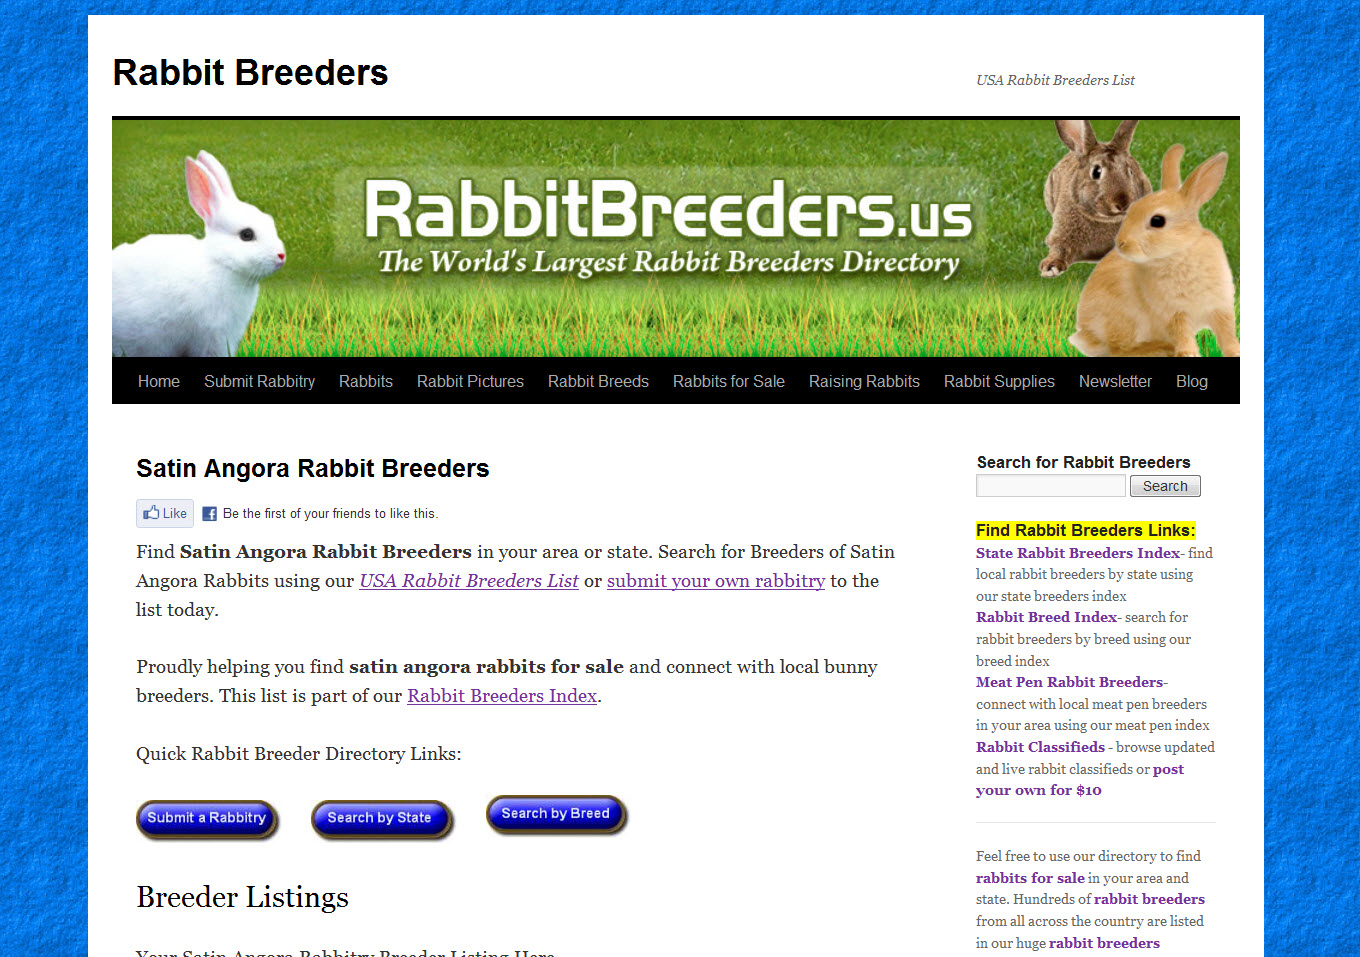 Satin Angora Rabbit Breeders